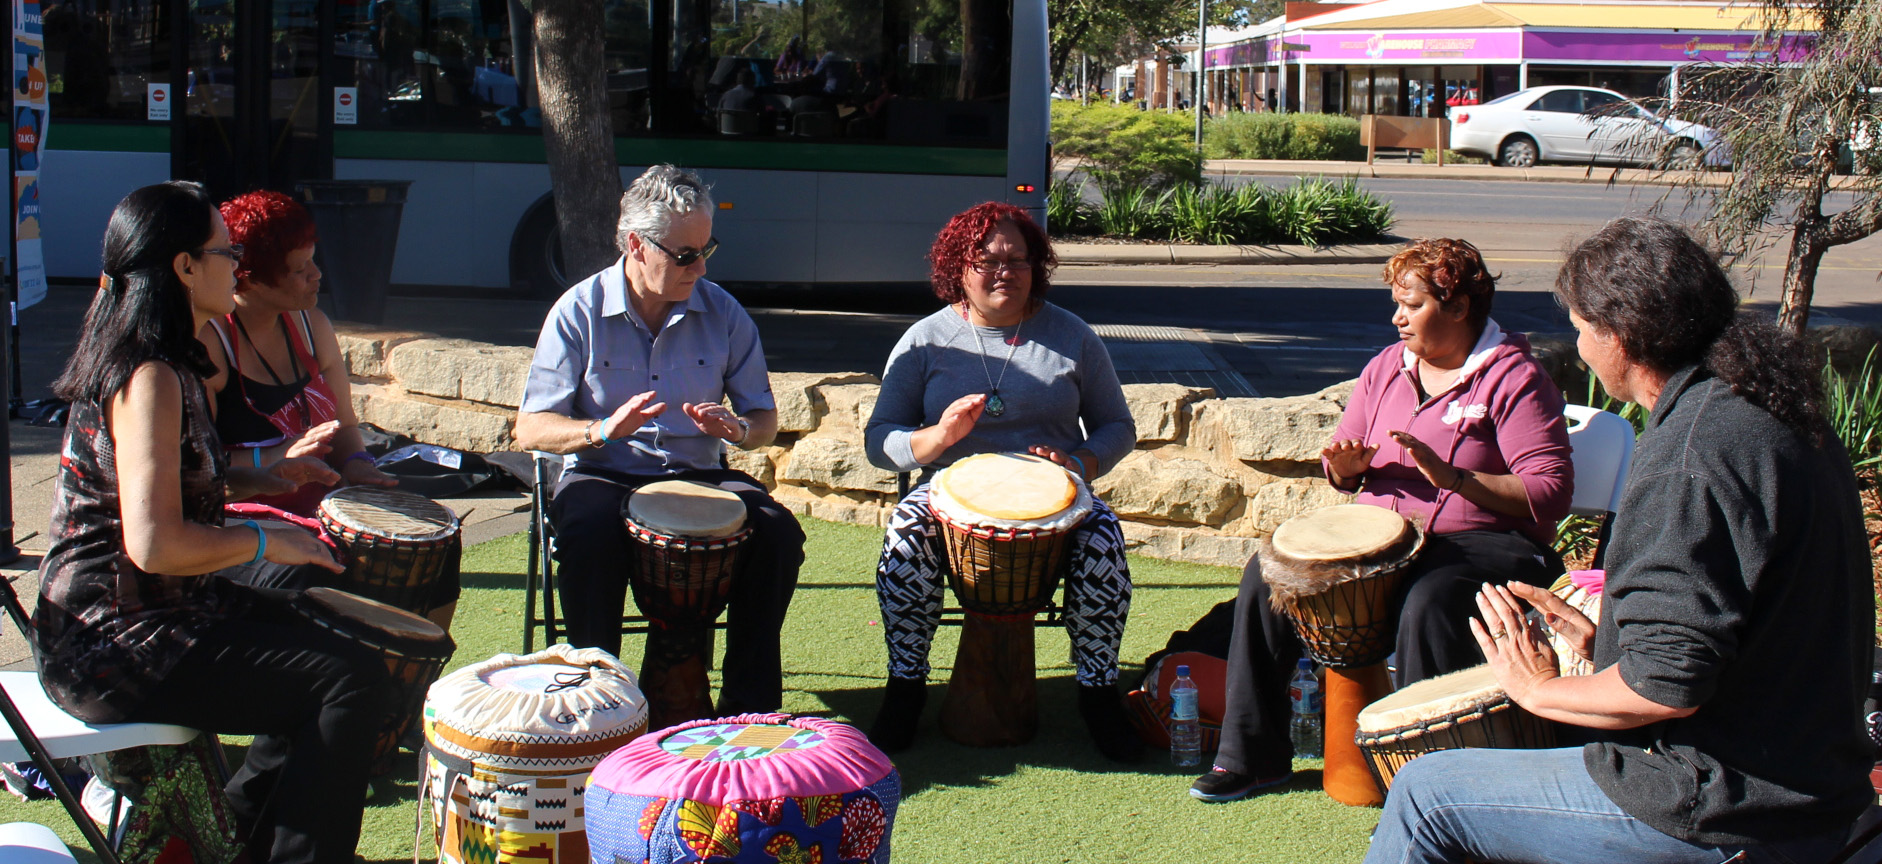 The free breakfast in Kalgoorlie included a Drumbeats session.